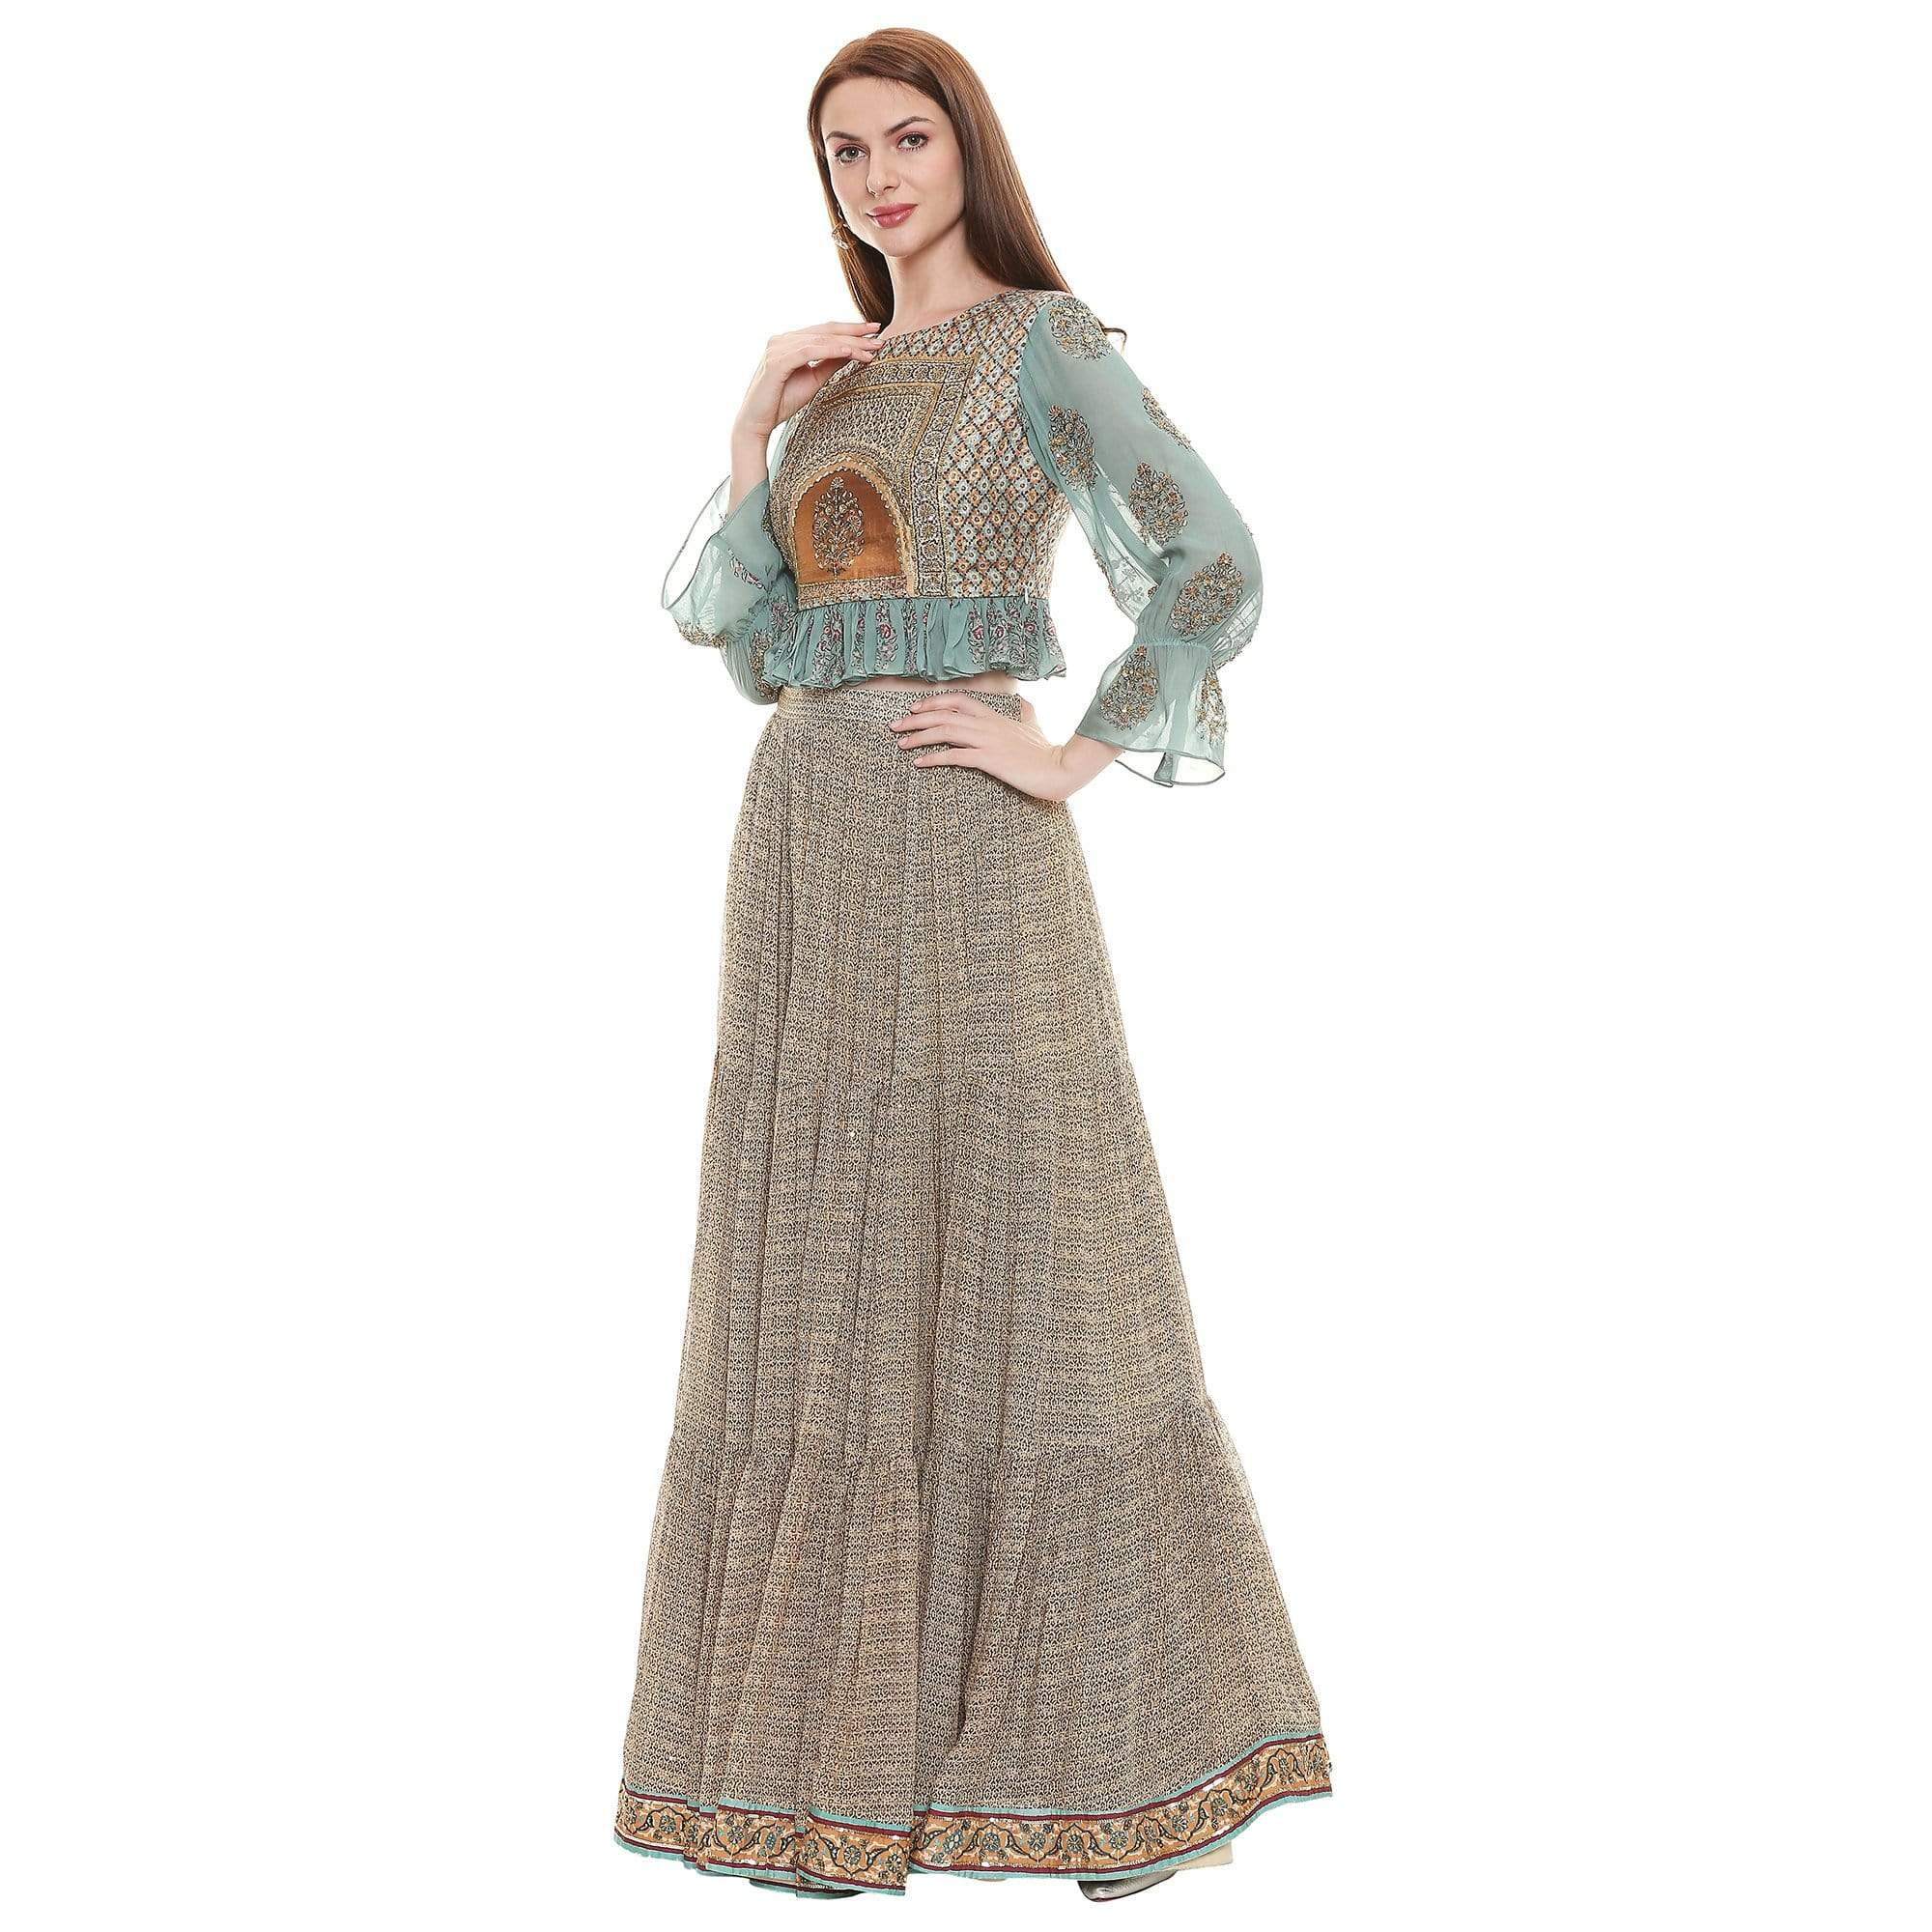 Sougat Paul Co-ordinated sets A set of crop top, three tiered skirt & dupatta